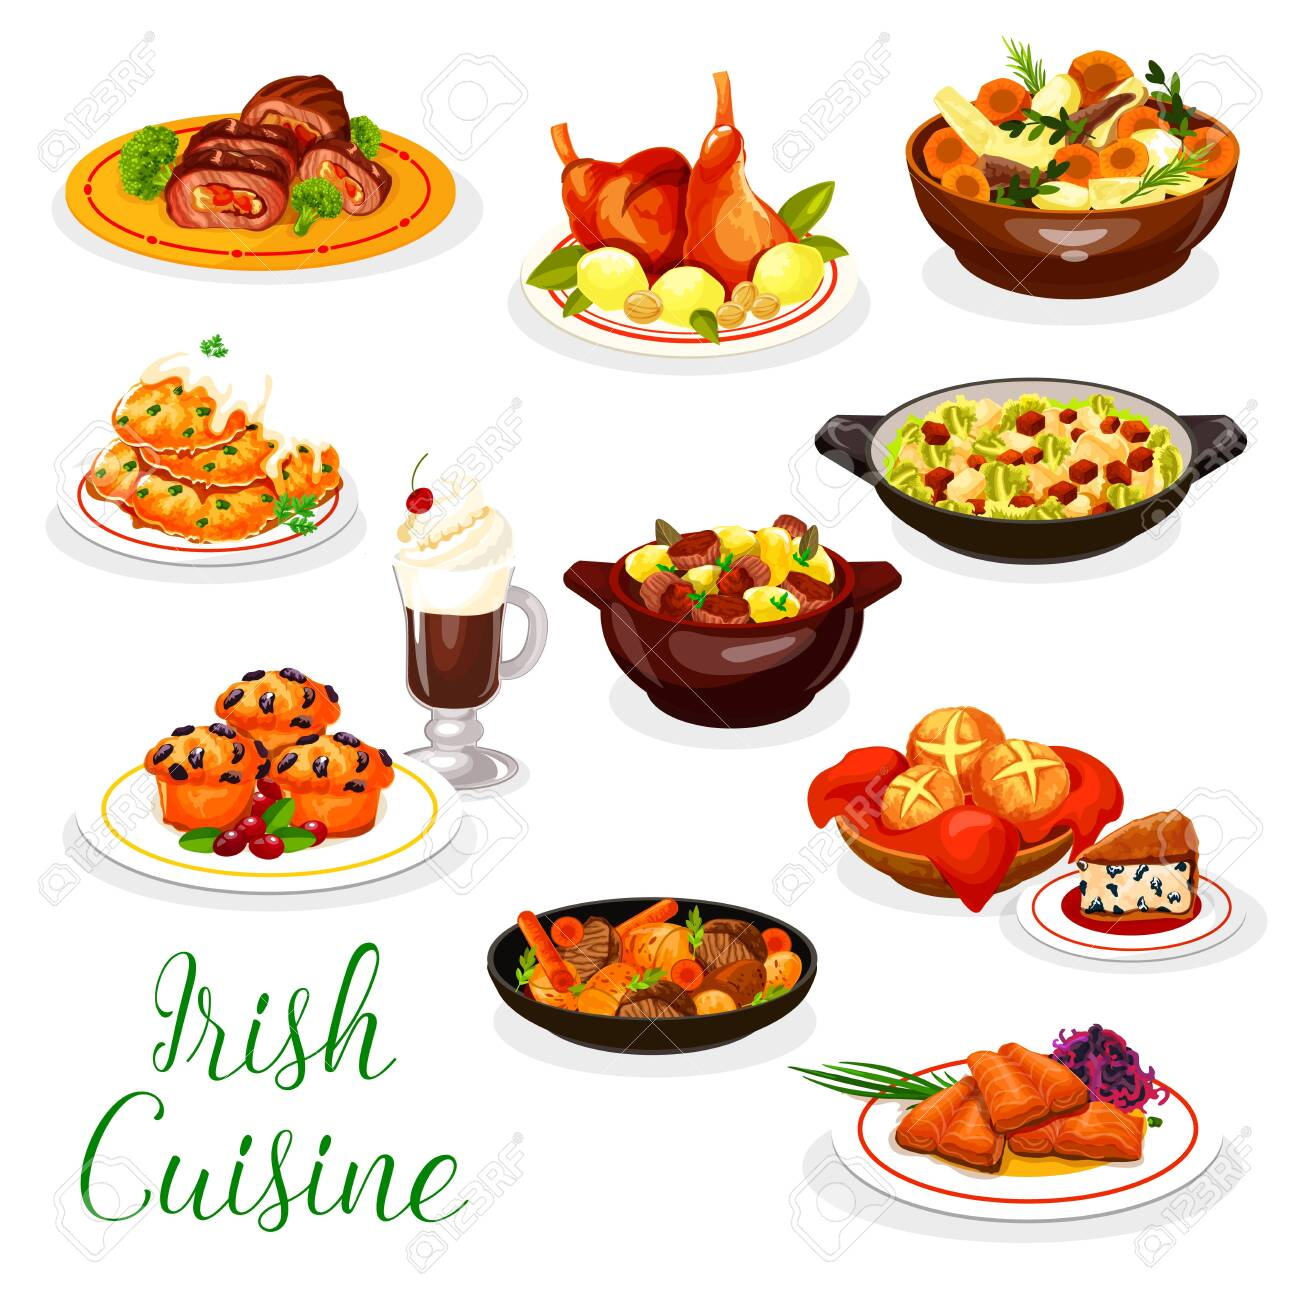 Cuisine of Ireland vector design with Irish coffee, meat and fish dishes. Vegetable stews with rabbit and lamb, baked salmon, potato pancake and red cabbage salad, beef roll, soda bread, berry cupcake - 133938445